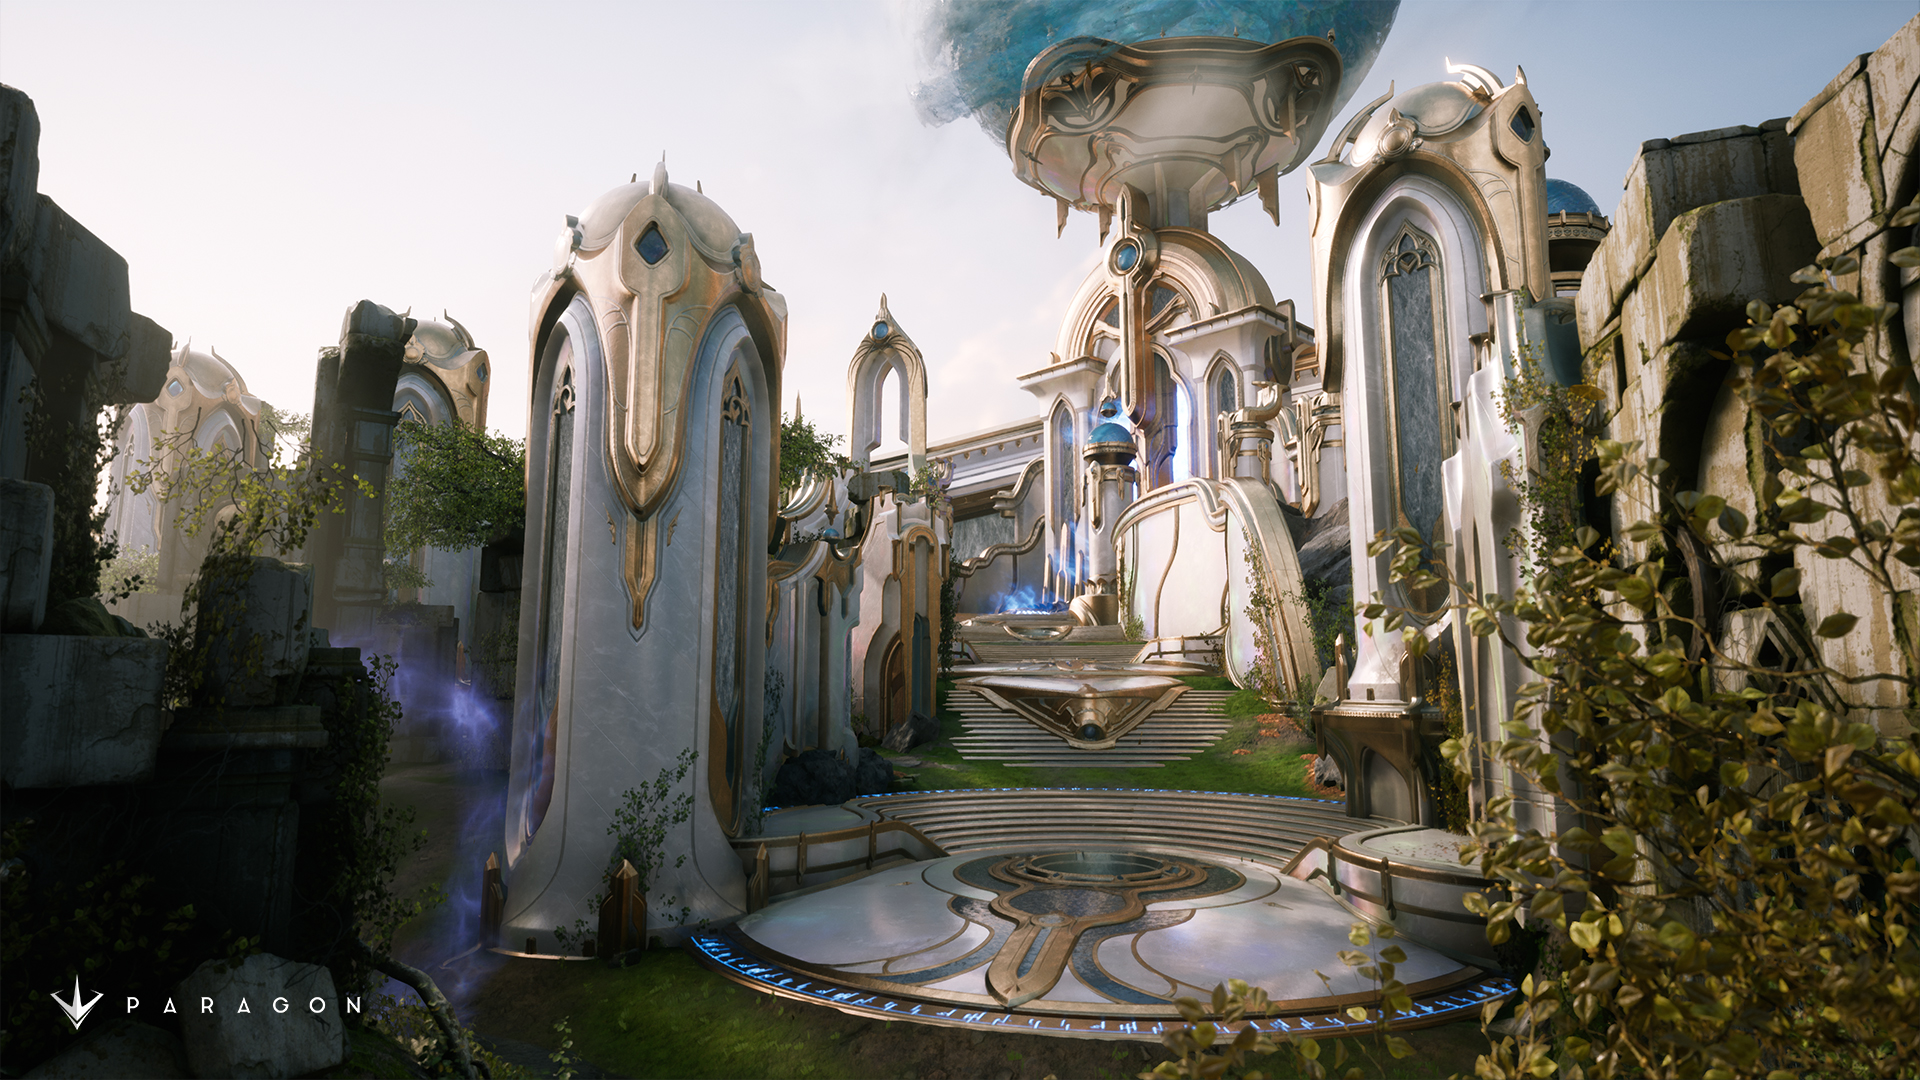 Paragon%2Fblog%2Fmonolith-visual-update%2FMonolith_Dawn_Screenshot-1920x1080-6fb4b632b60ff817dcee16053e285ae572e5d9b2